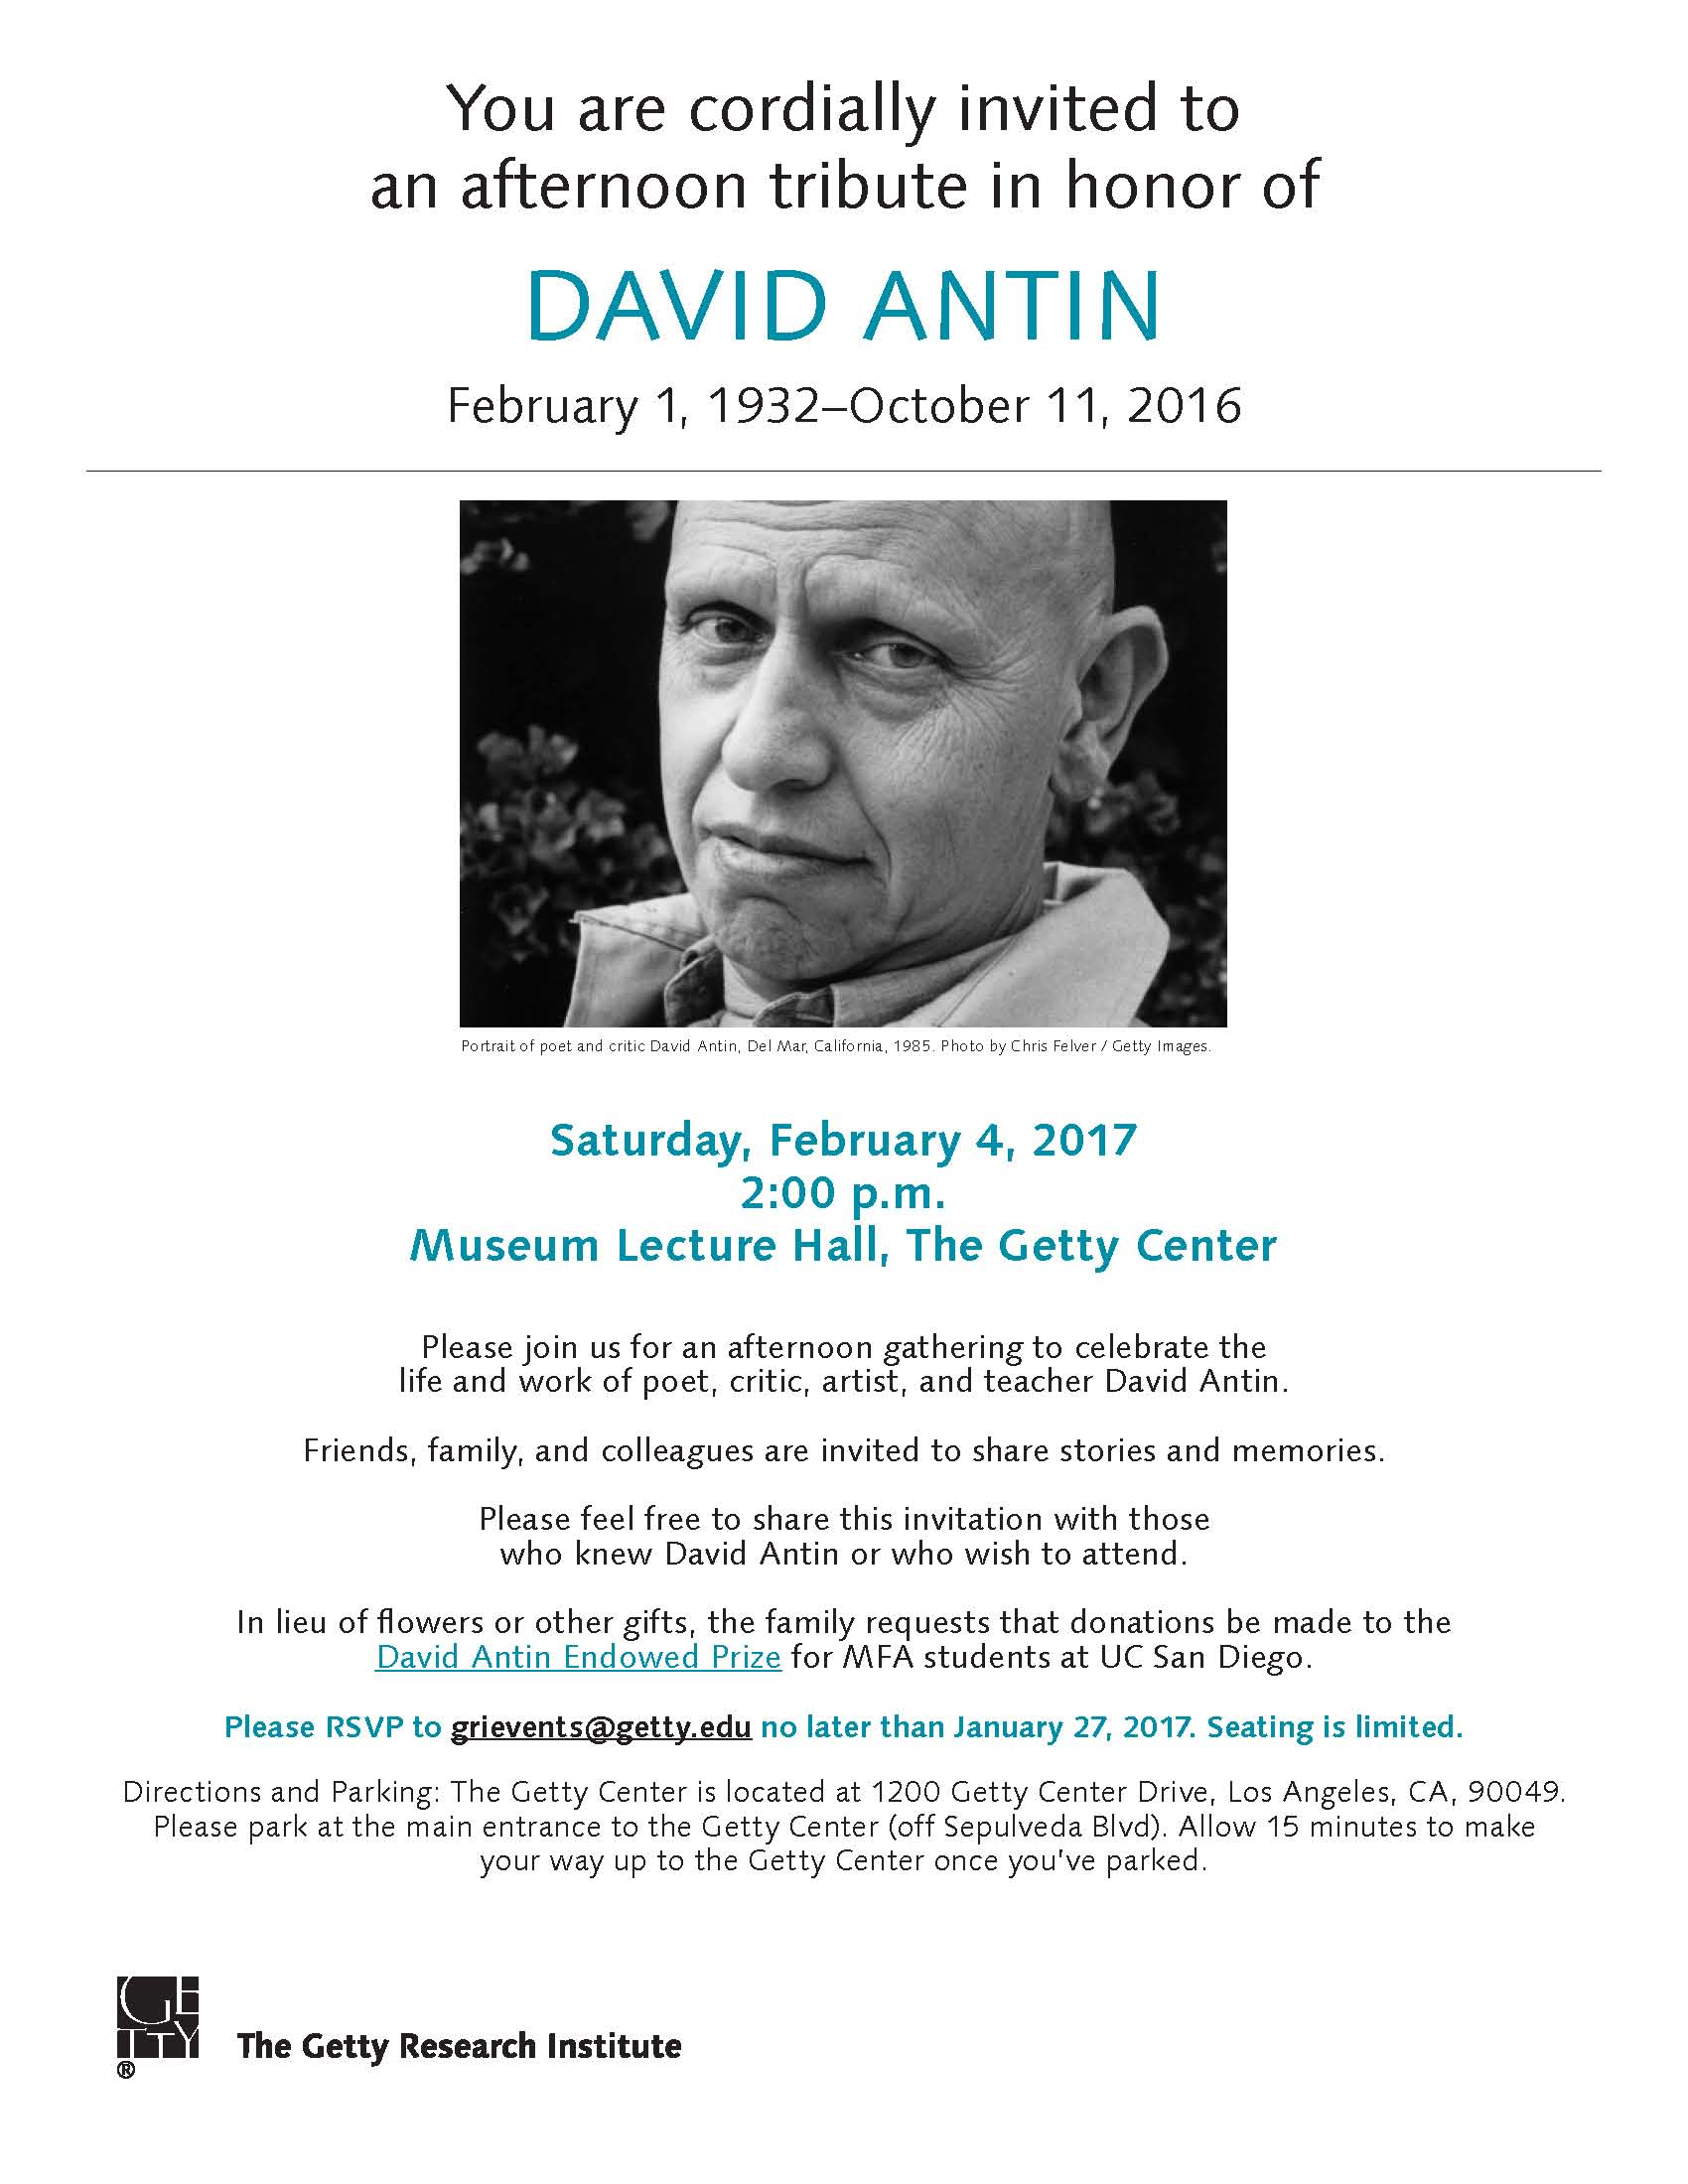 Invitation-David-Antin-Tribute_Final.jpg